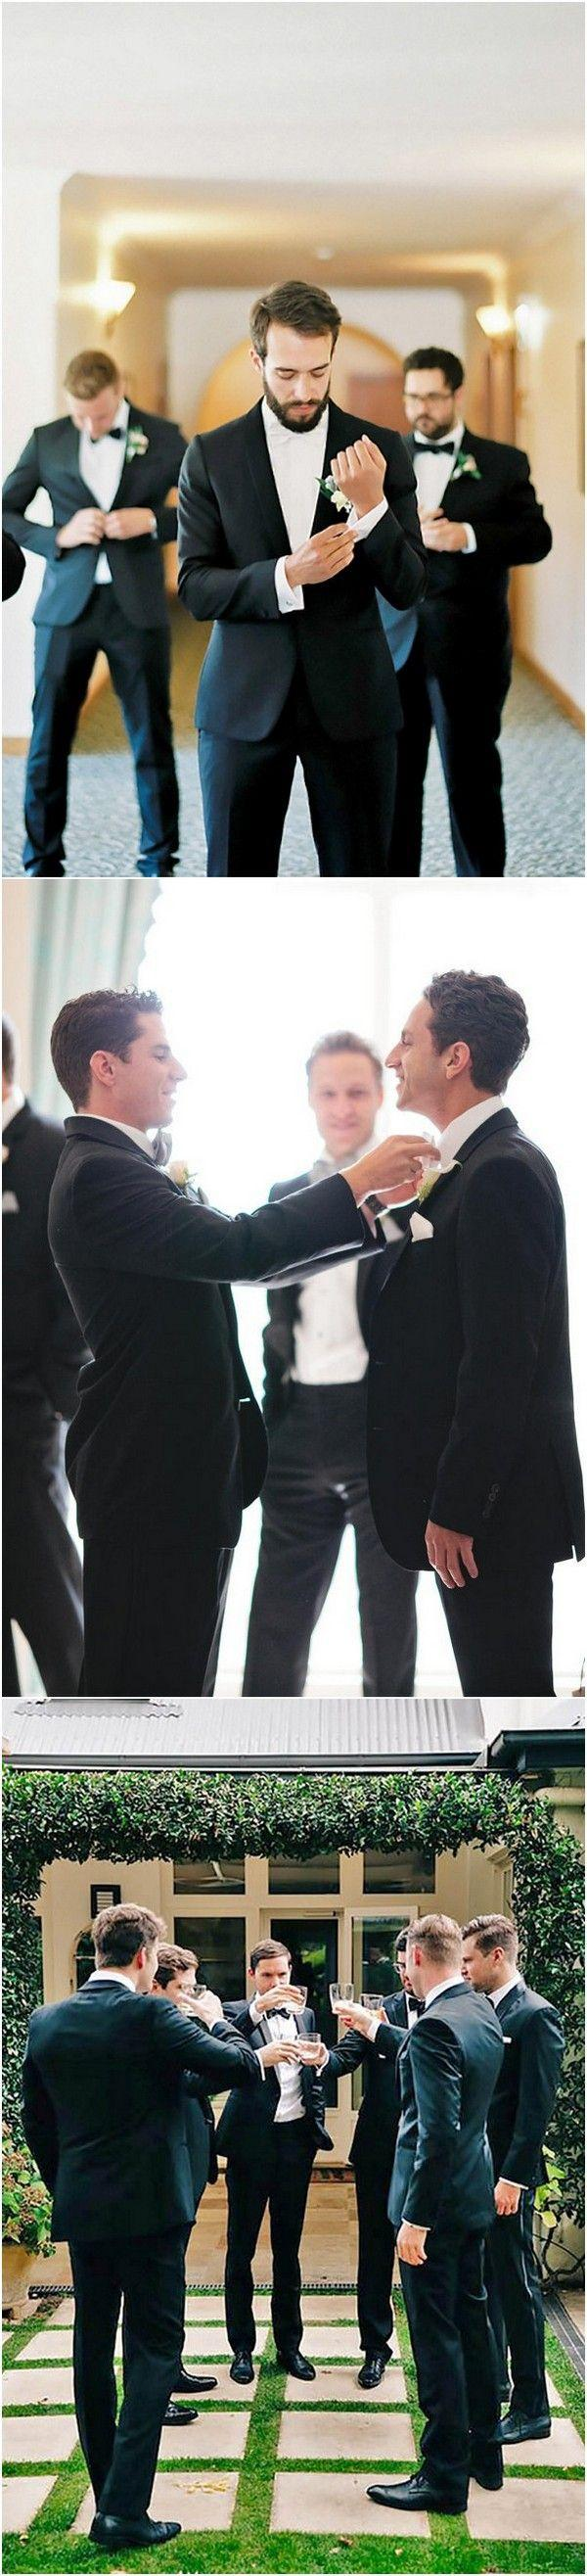 Wedding - 18 Awesome Wedding Photos With Groomsmen That You Can't Miss